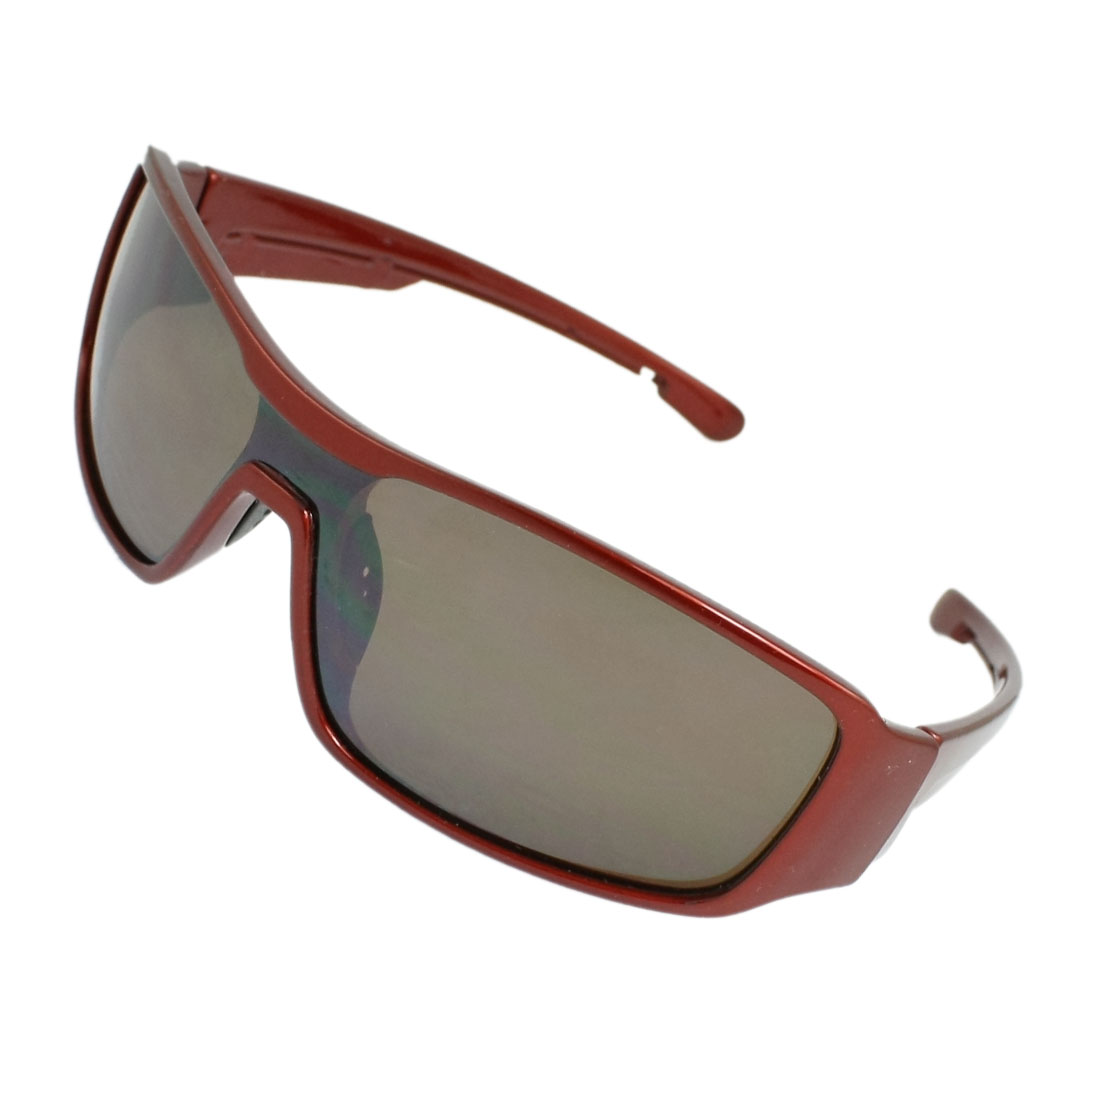 Plastic Wide Arms Rectangle Shape Lens Sunglasses Dark Red for Men Woman